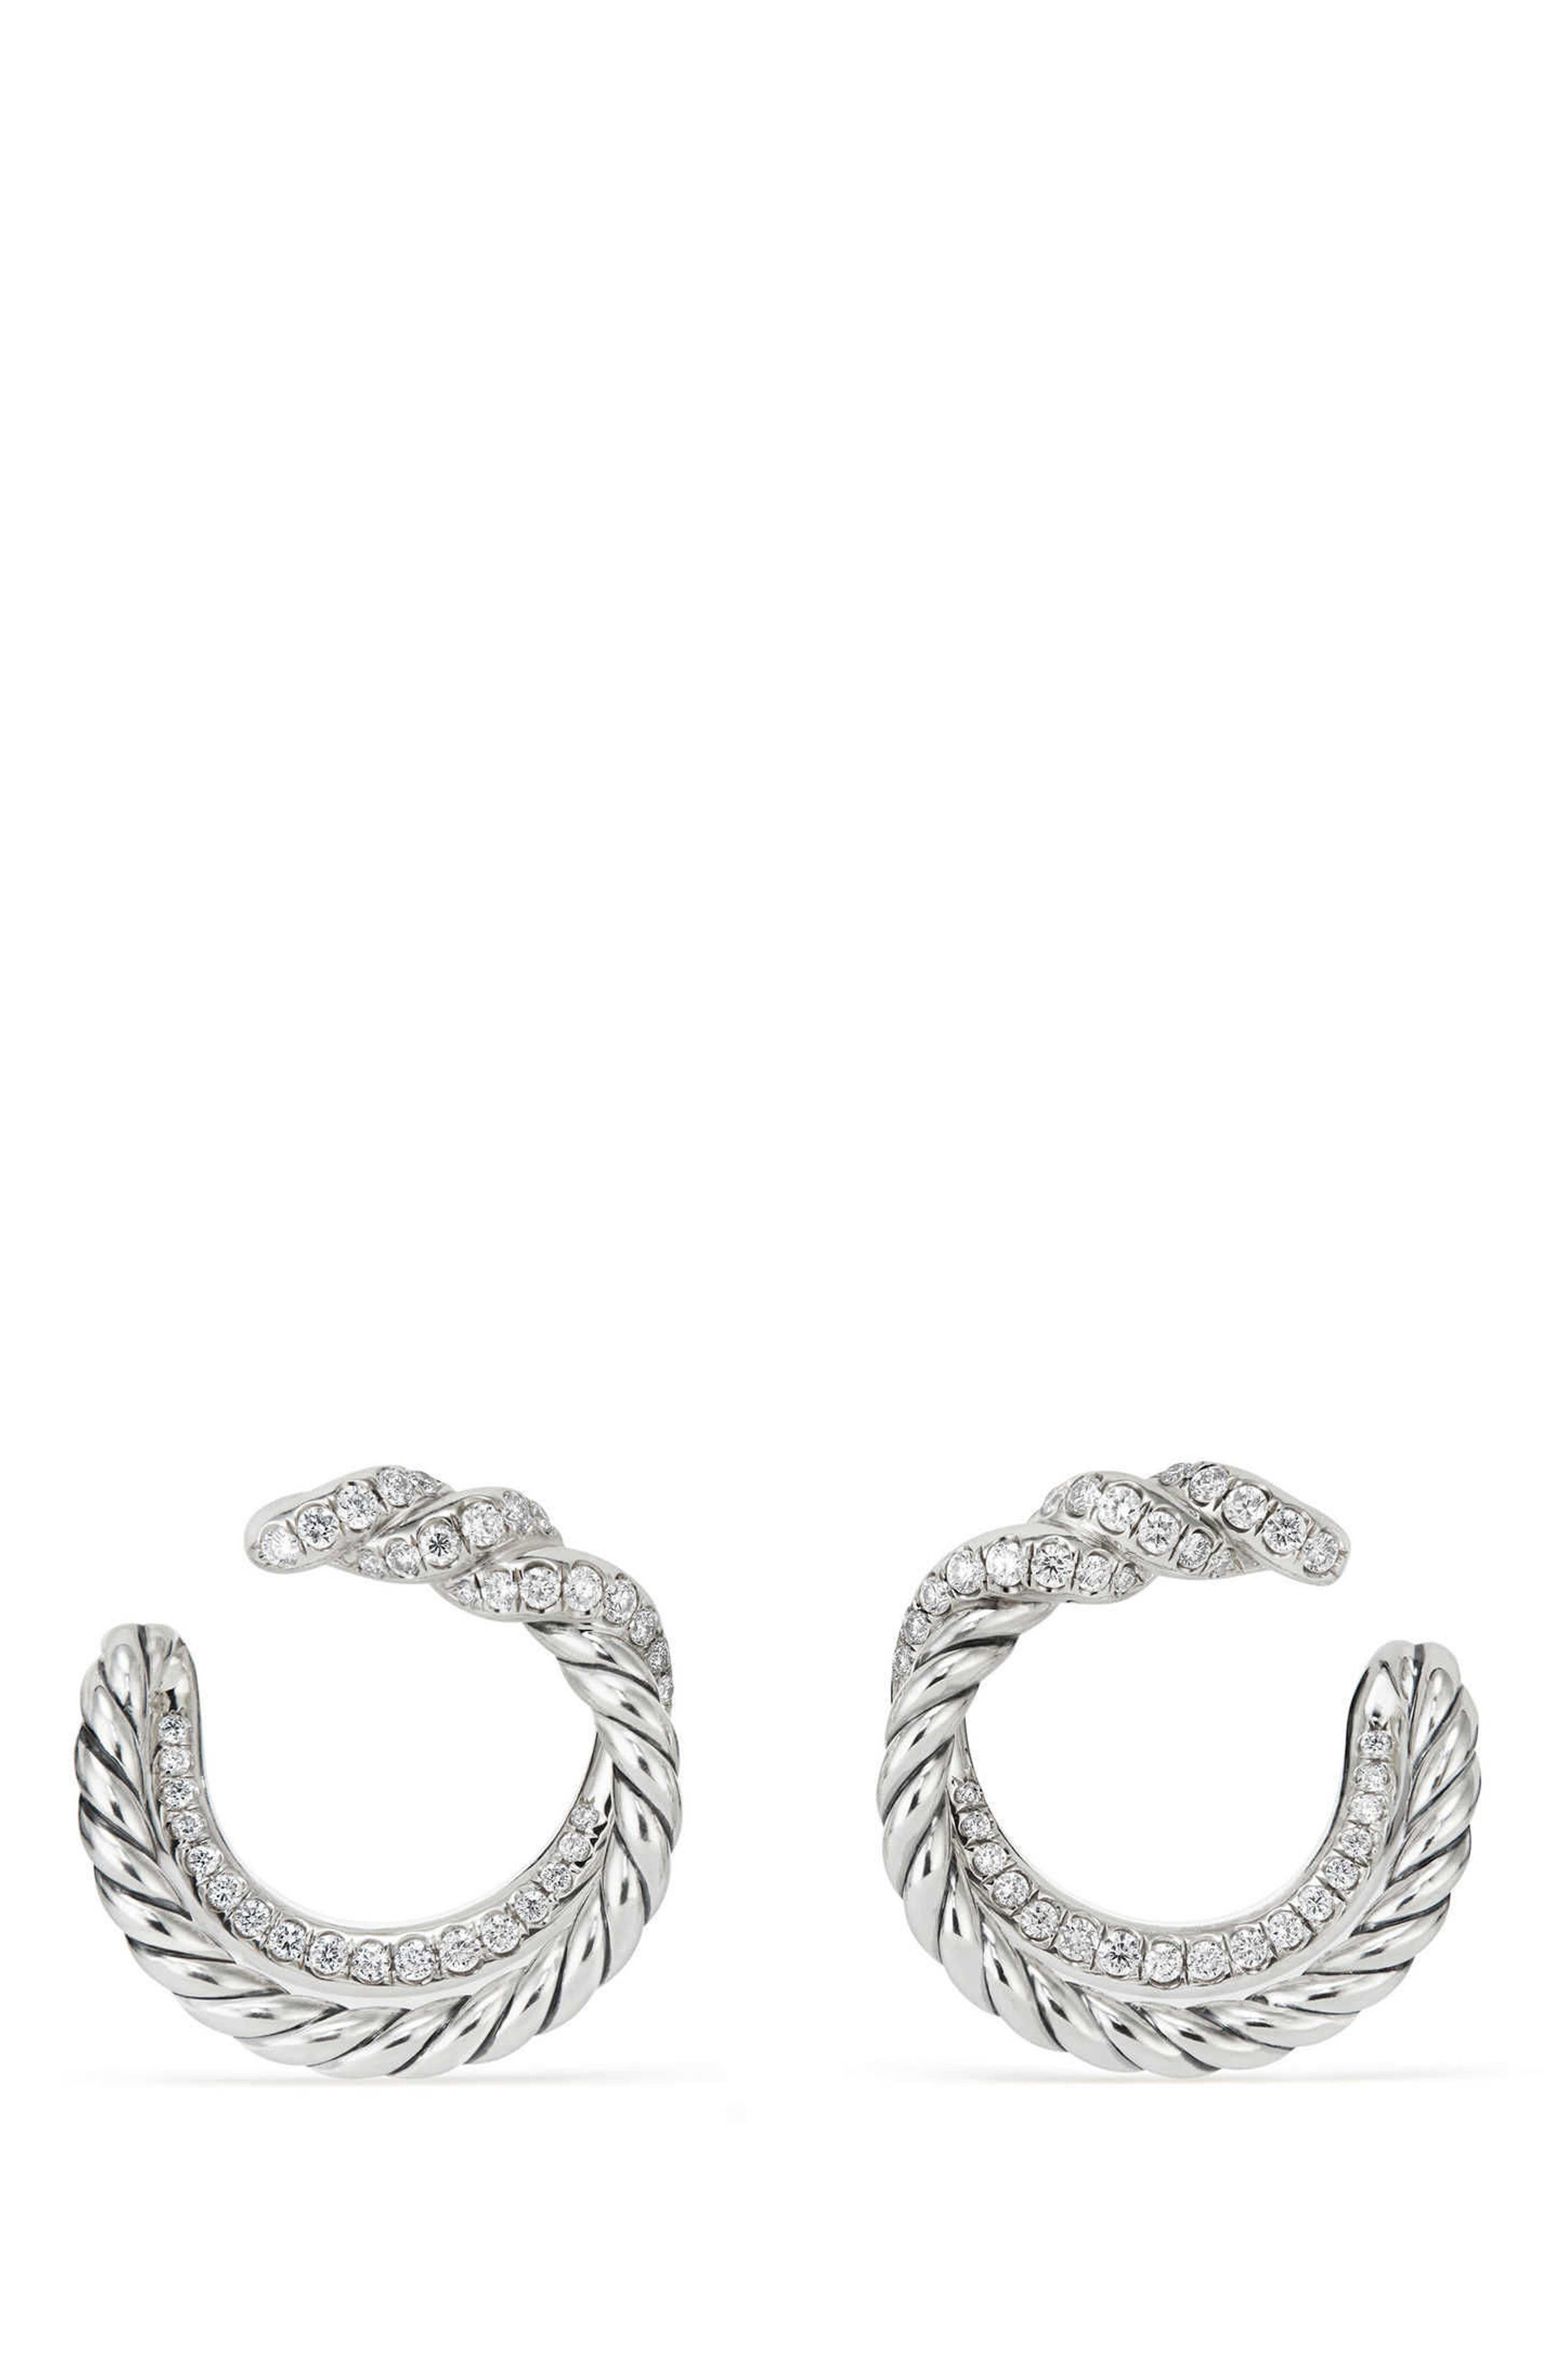 Continuance Hoop Earrings with Diamonds,                             Main thumbnail 1, color,                             Silver/ Diamond